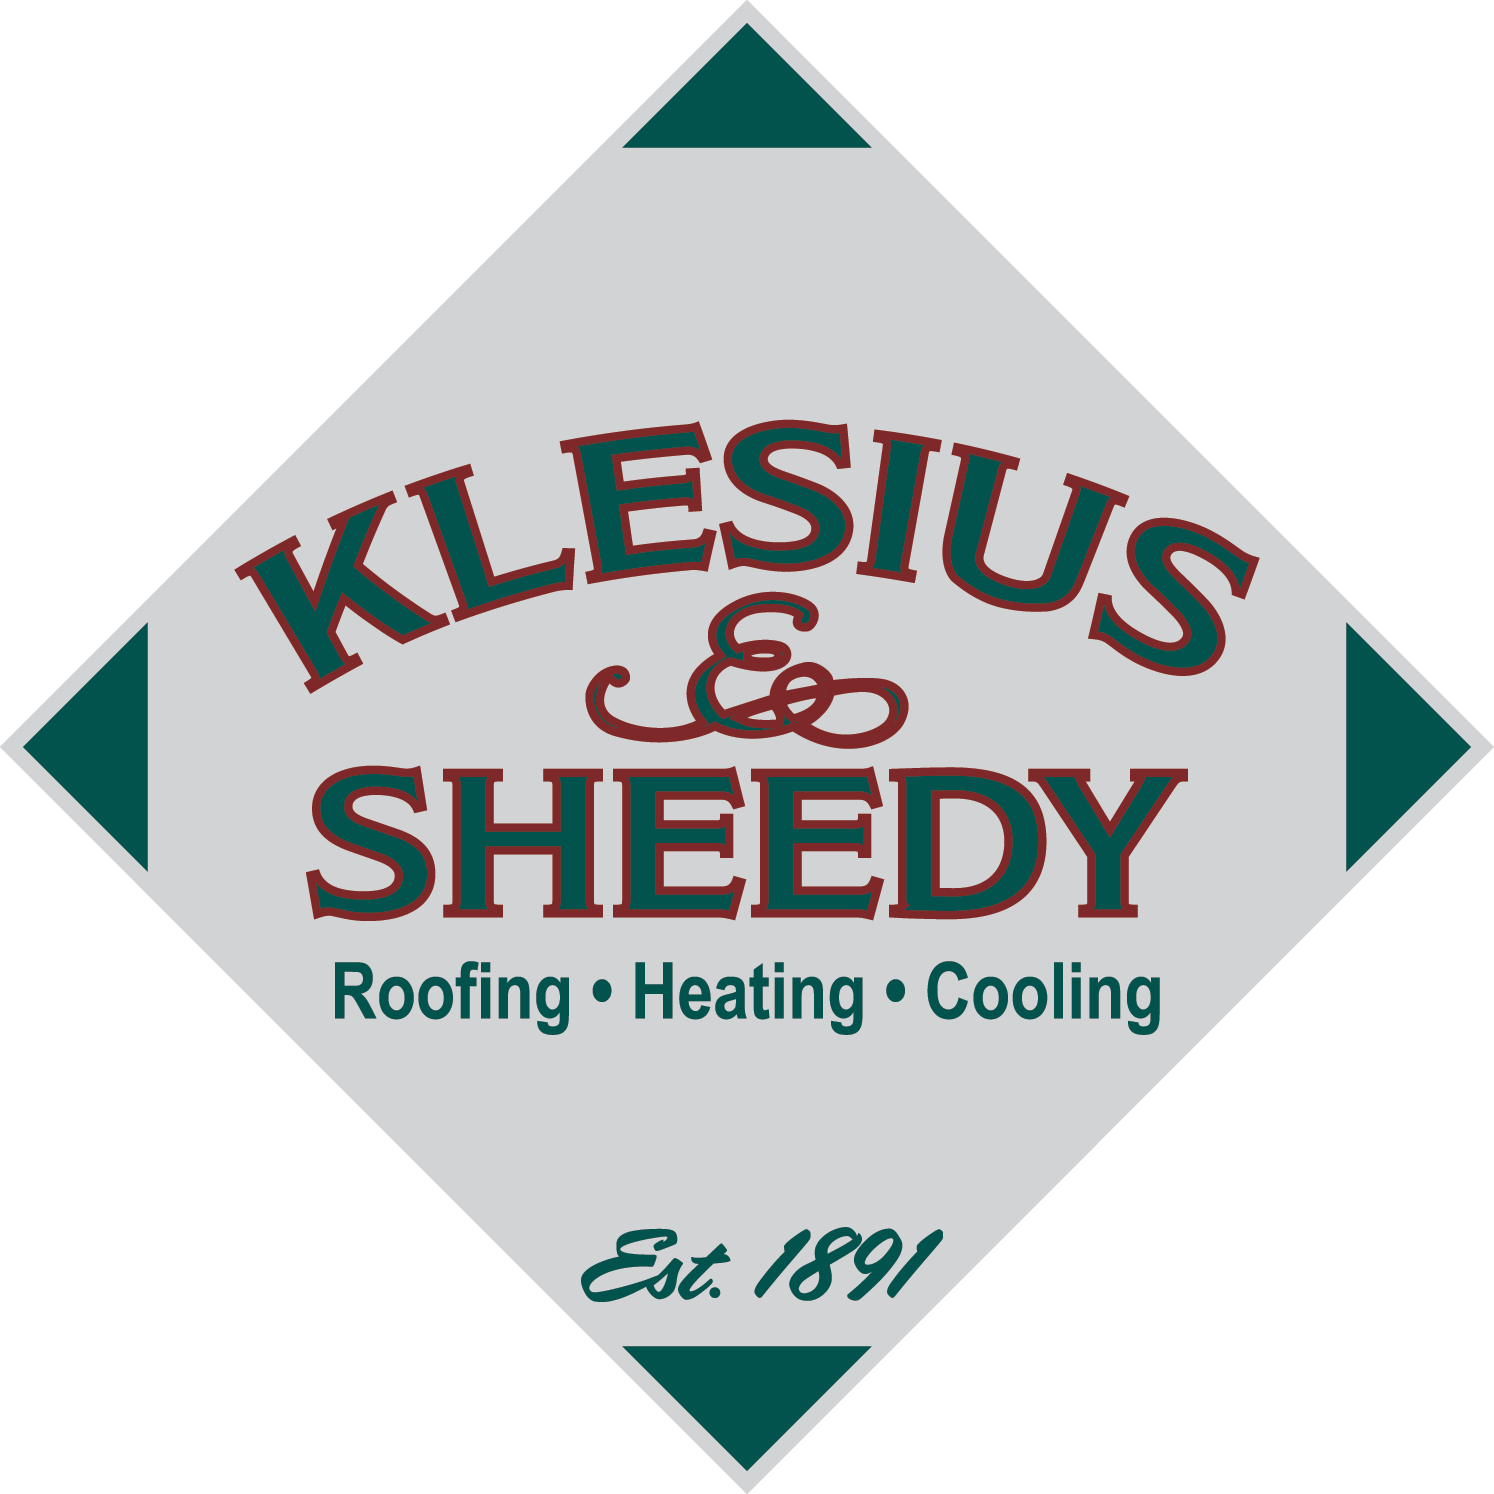 Klesius & Sheedy